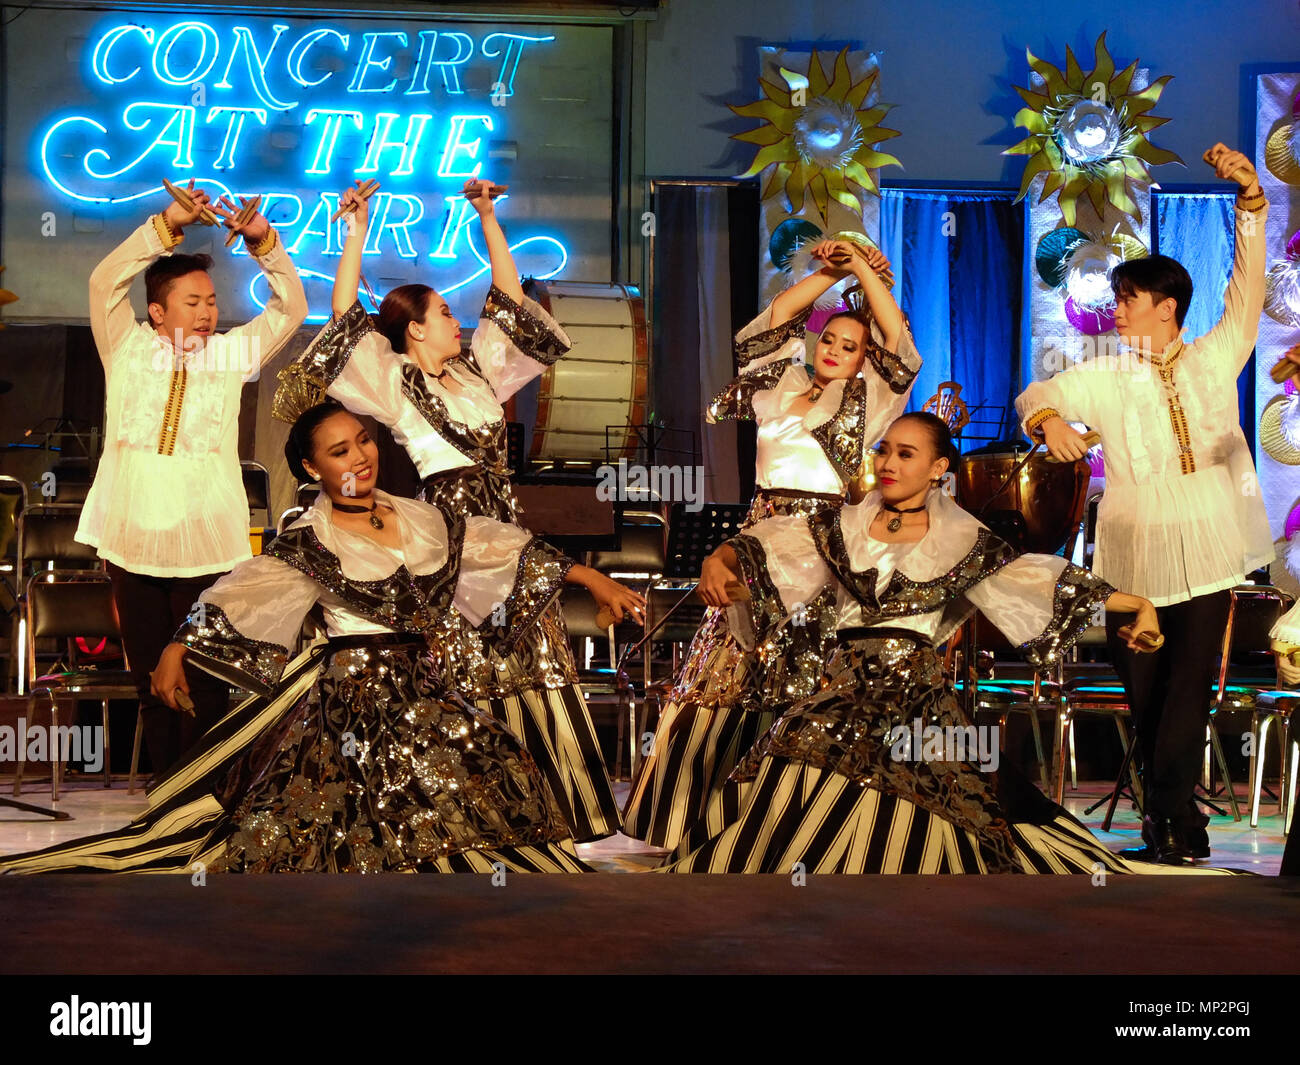 Manila, Philippines. 20th May, 2018. A dance that originated in the capital city around the 19th century. Like the other Jotas in Philippine folk dances, this is an adaptation of the Castillian Jota, but the castanets are made of bamboo and are only held, not fastened, to the fingers. It is recognizably Iberian in flavor. Credit: Josefiel Rivera/Pacific Press/Alamy Live News Stock Photo